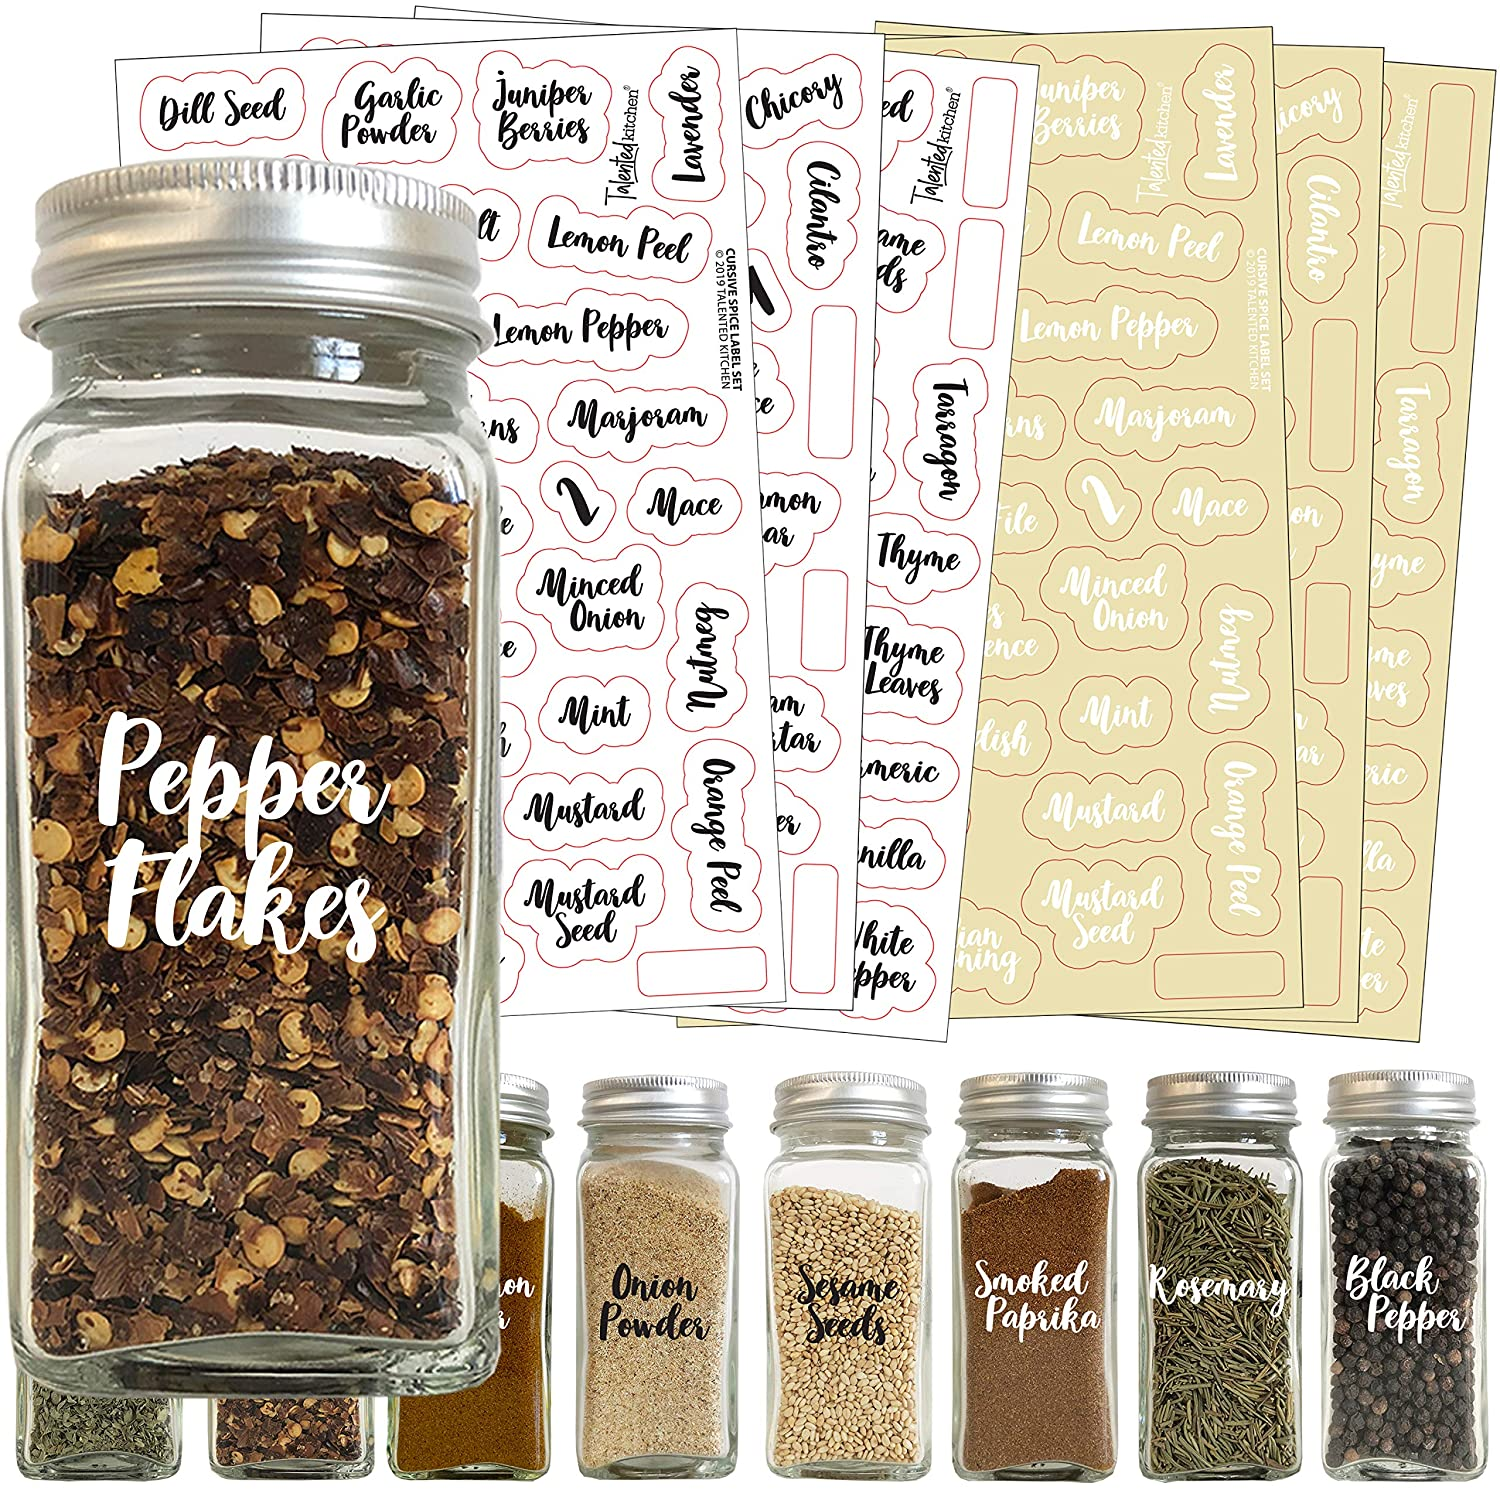 Talented Kitchen 212 Cursive Spice Label Combo – 212 Black & White Preprinted Labels: Most Common Spice Names in 2 Letter Colors on Clear Stickers. Waterproof, Spice Jar Labels Spice Rack Organization